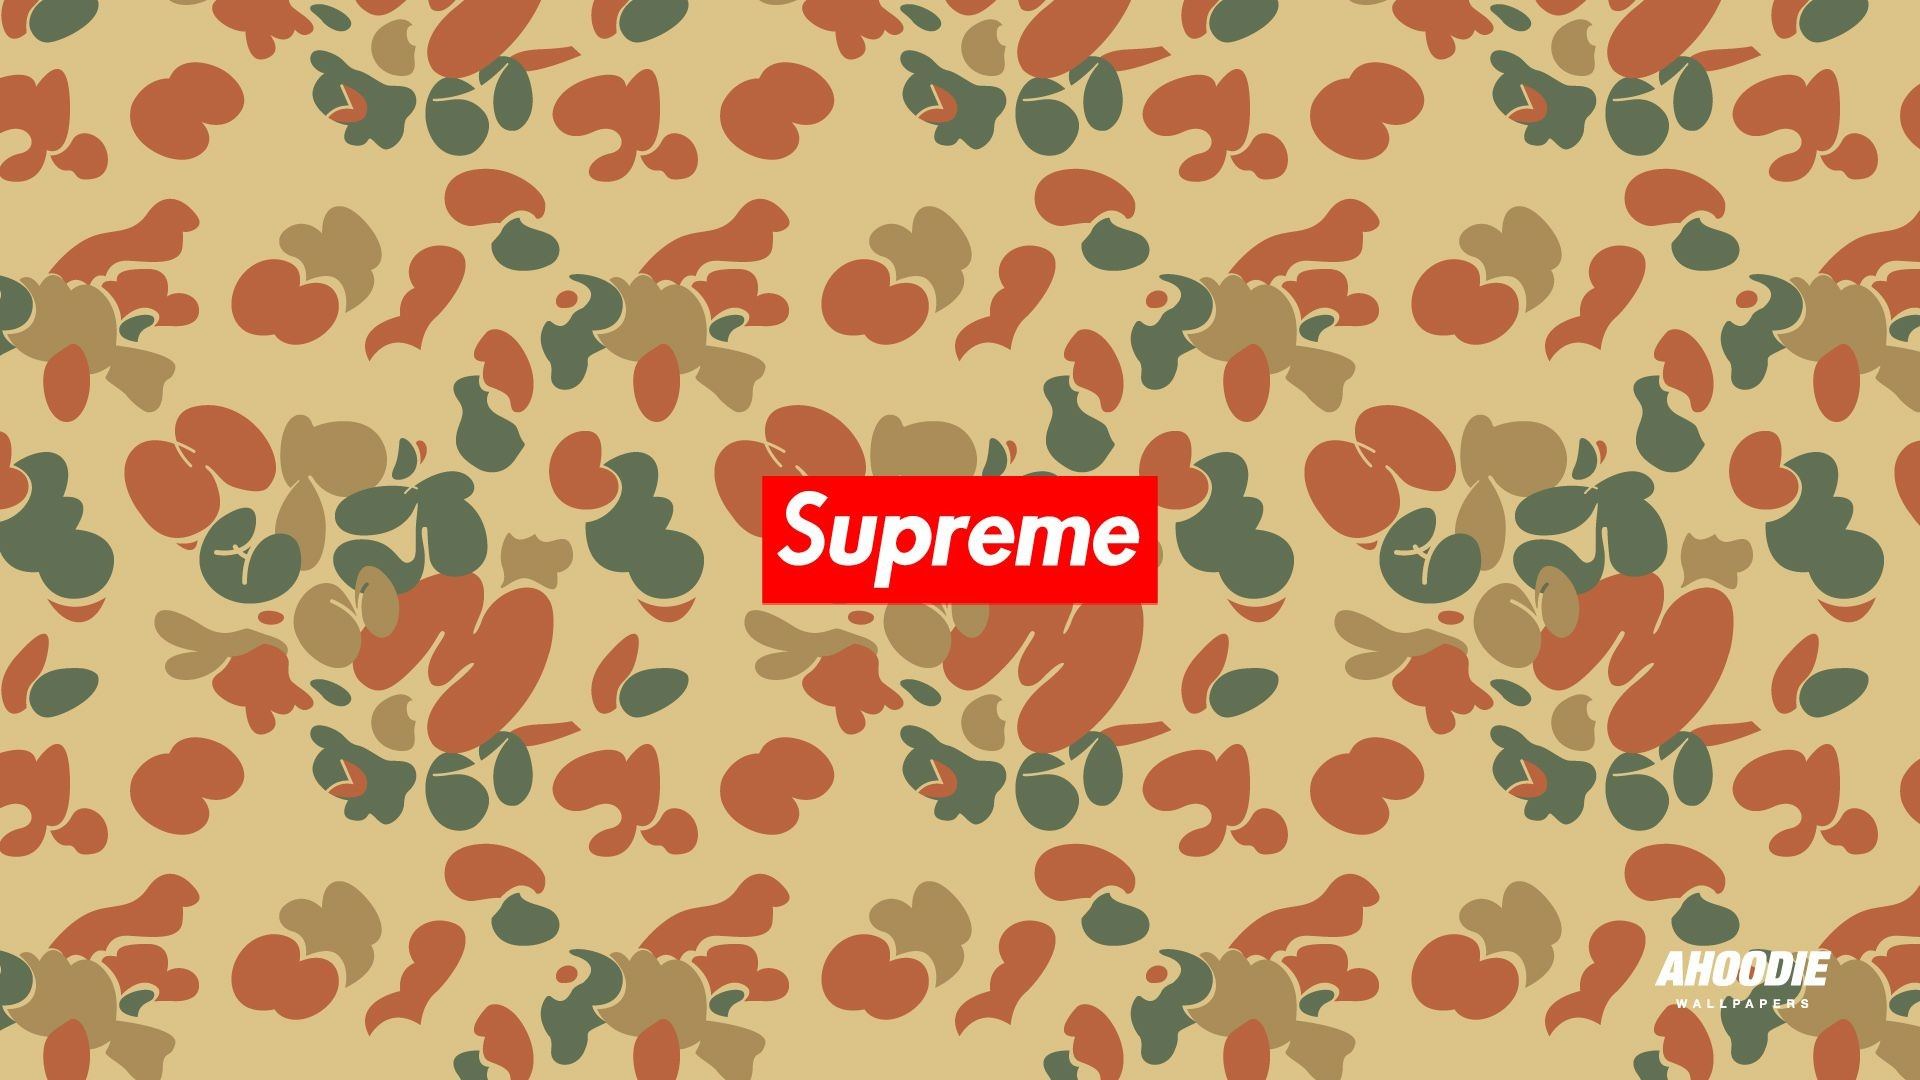 Res: 1920x1080, supreme - Google Search